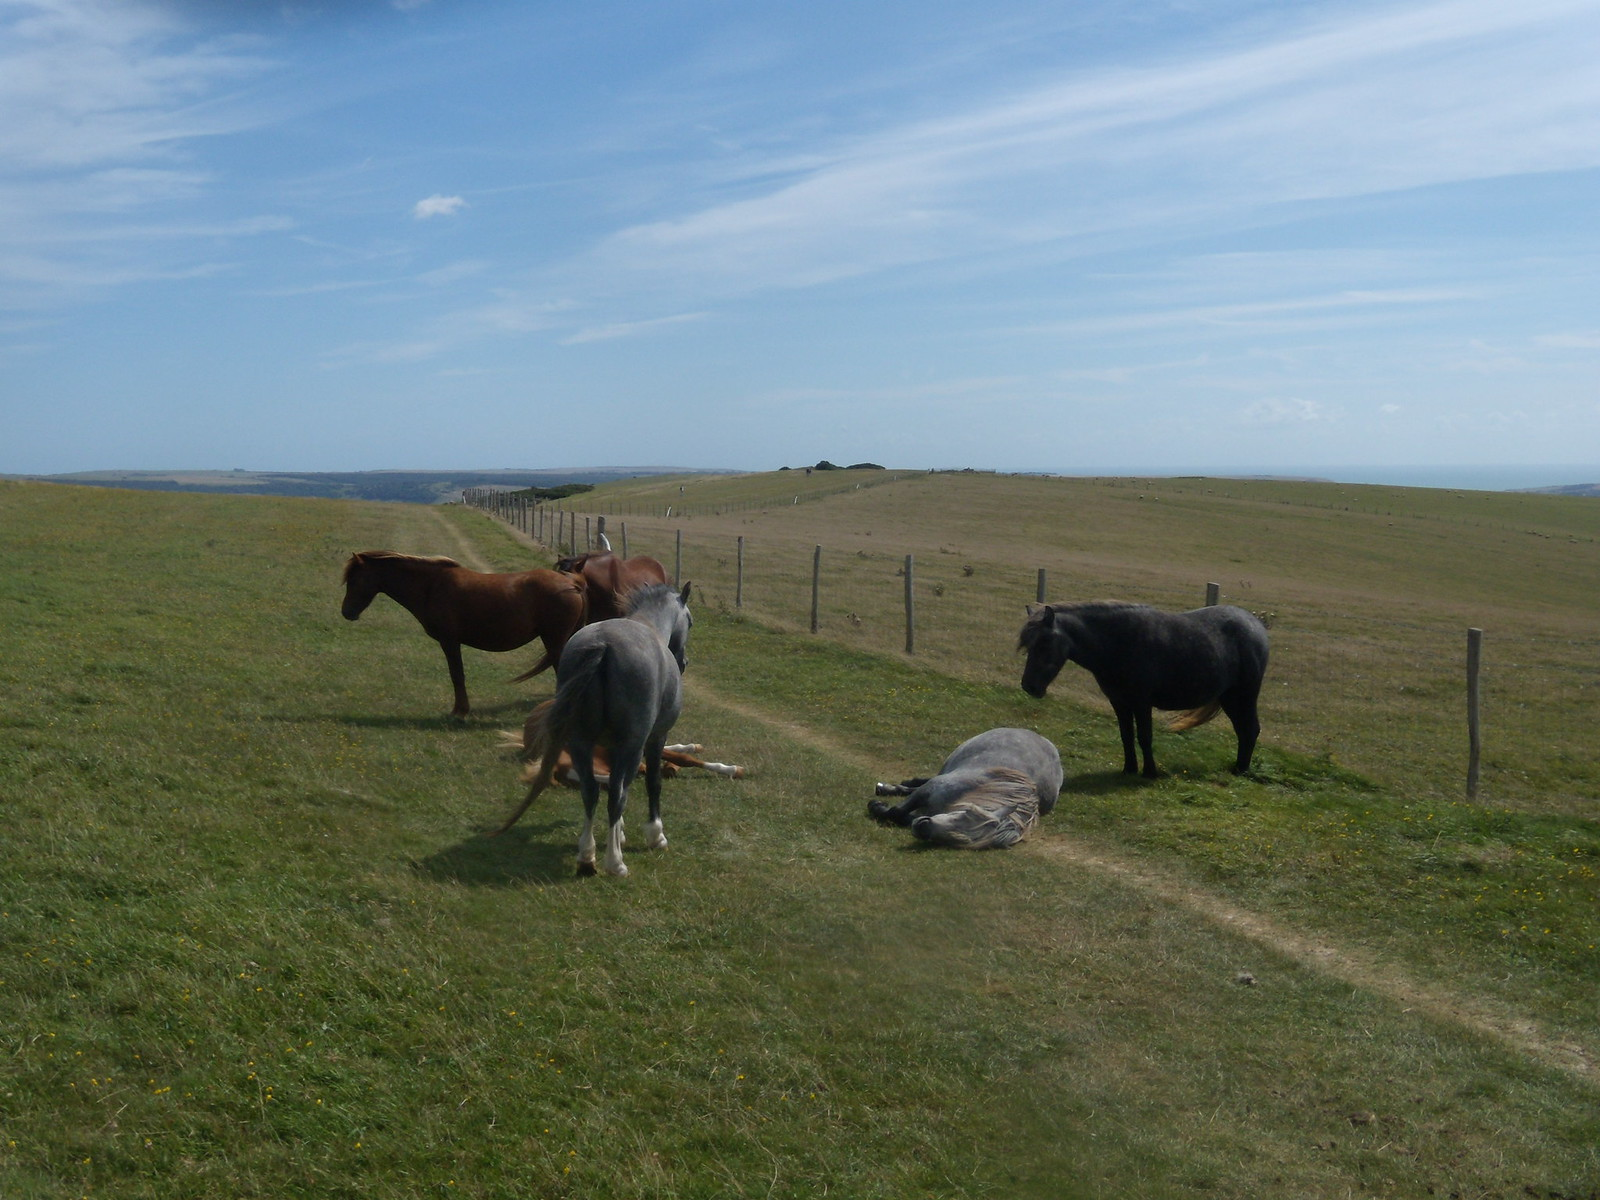 Horses lying down Glynde to Seaford